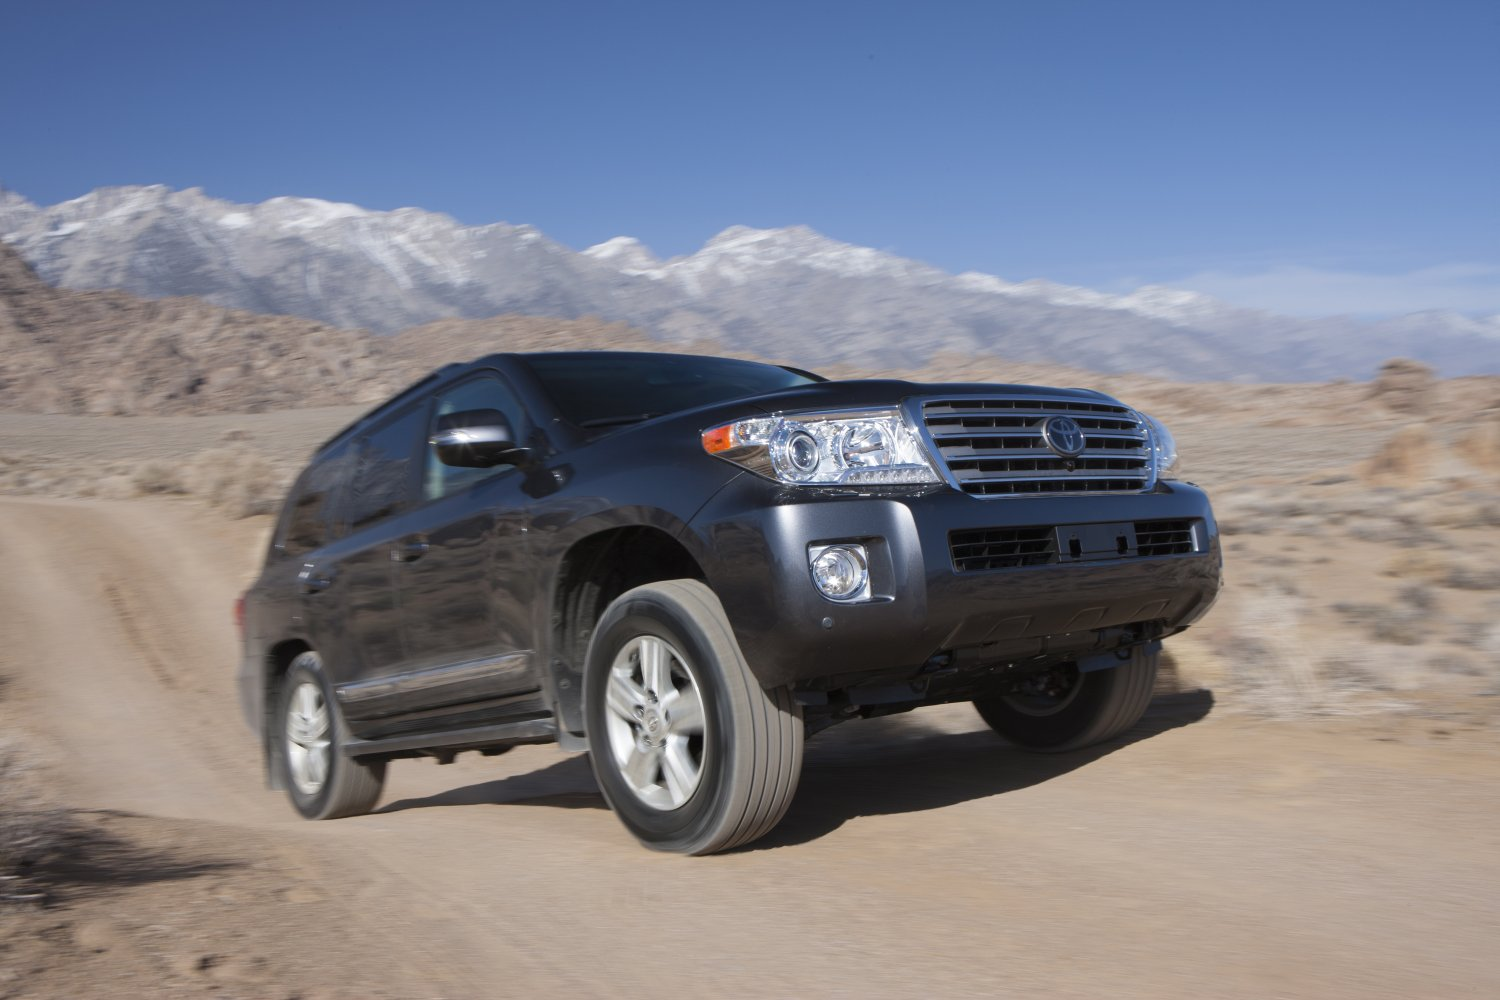 2013_Toyota_Land_Cruiser_007